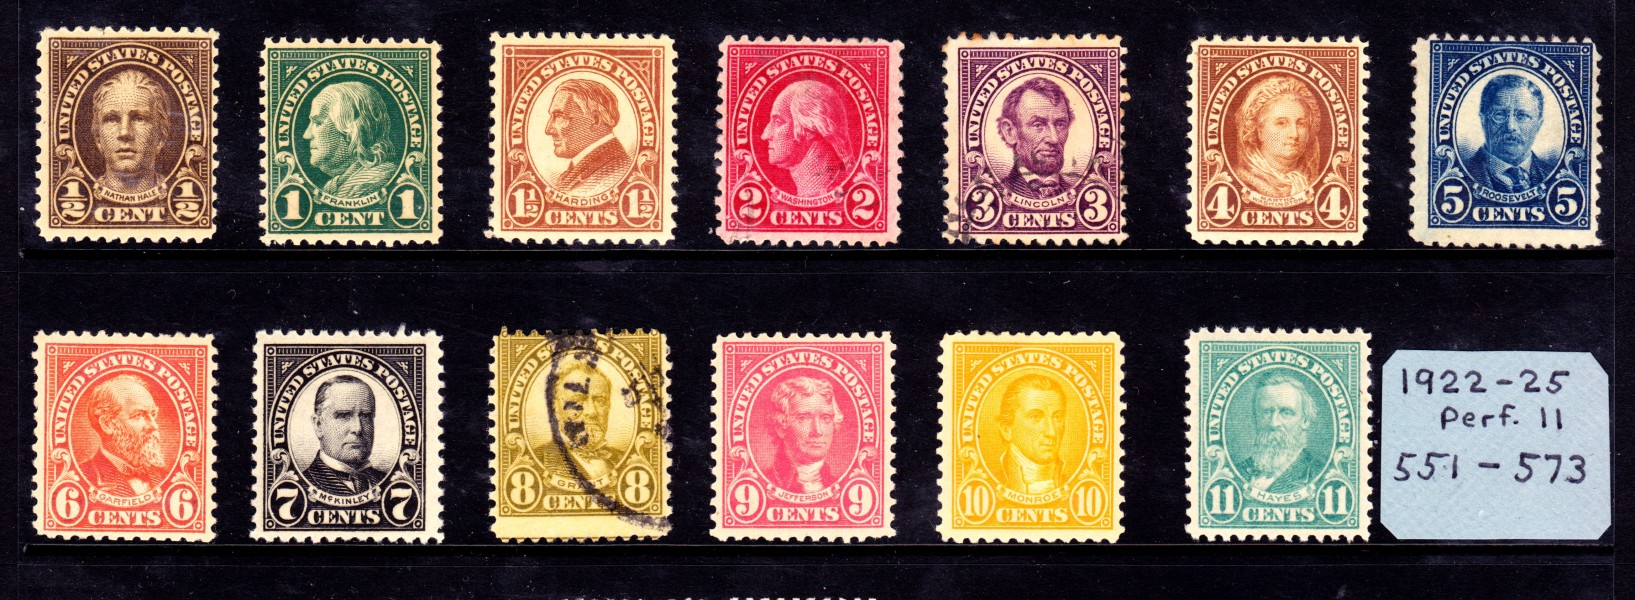 Regular Issue 1920s 1-11c